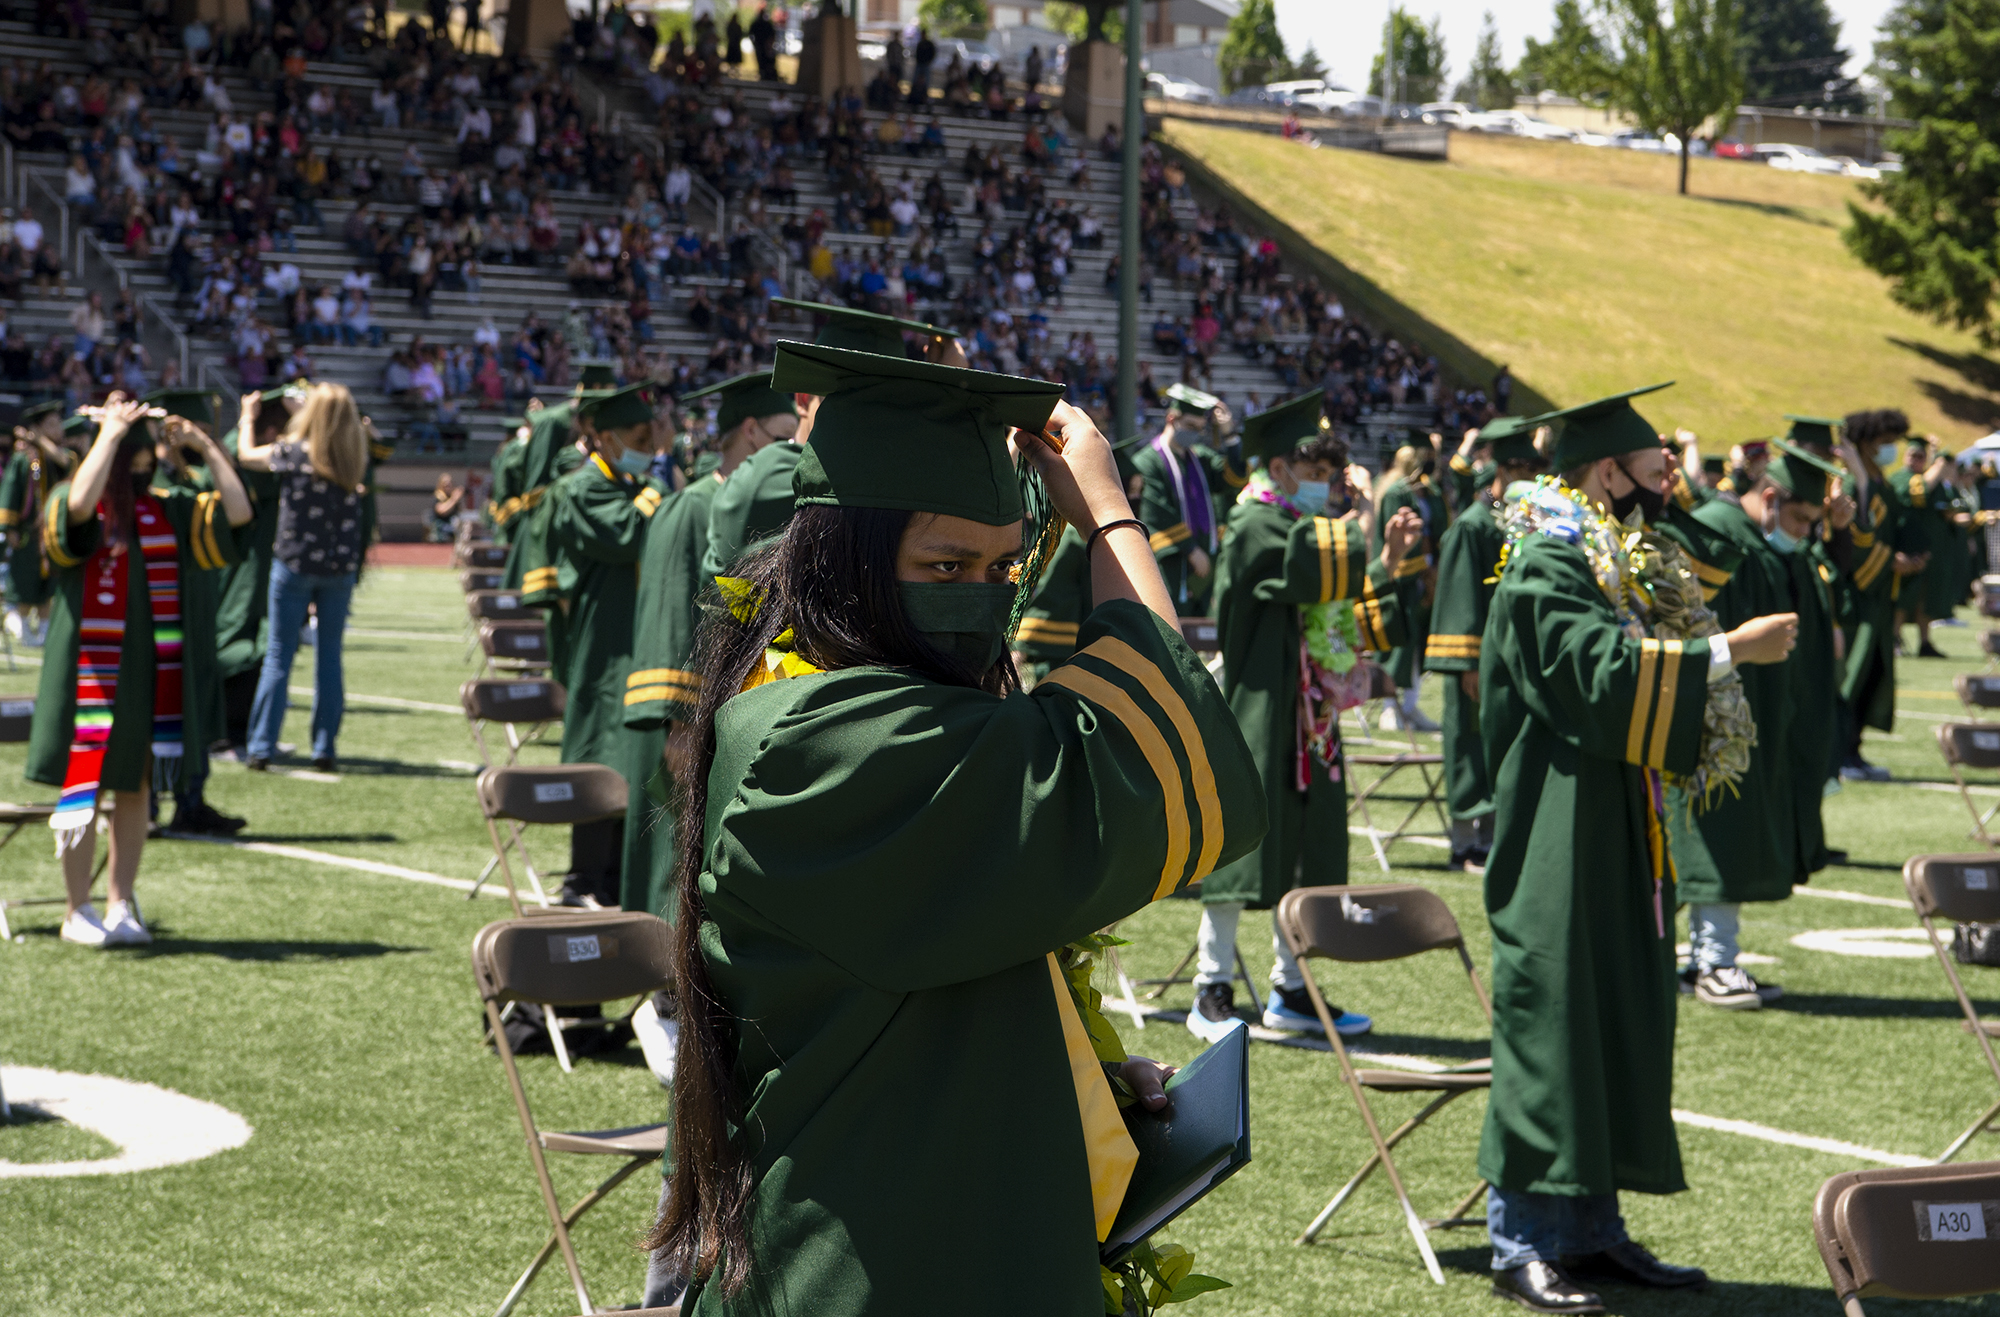 ASB treasurer Sirak Yohannes flips her tassle from the right to left to signify her graduation at the Evergreen High School graduation ceremony on Saturday, June 12, at McKenzie Stadium.